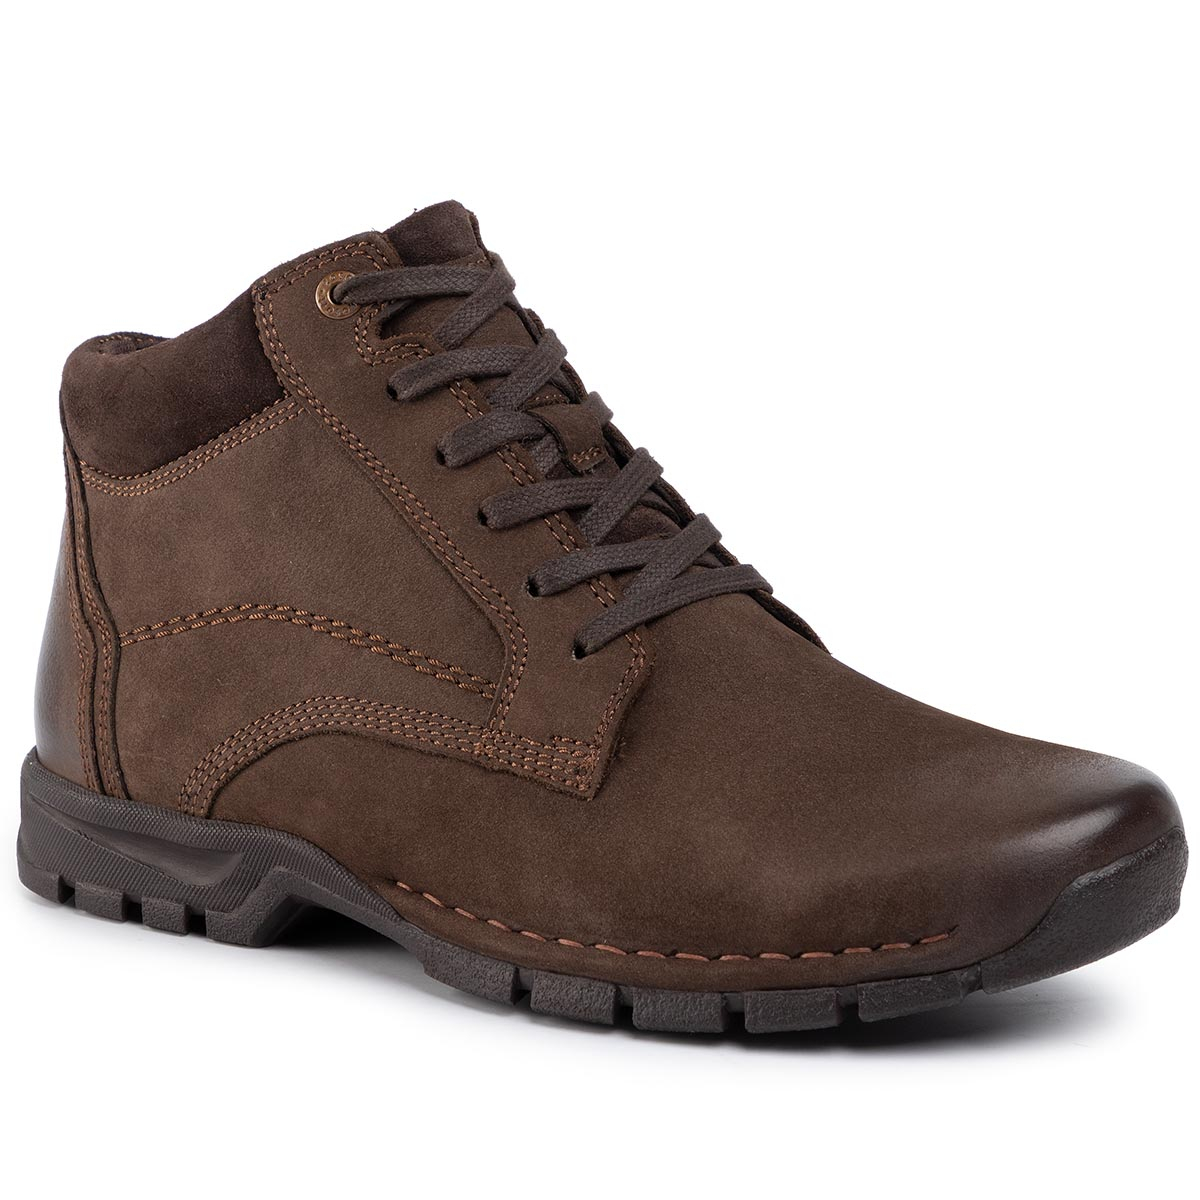 Go Soft MI07-A847-A676-01 Brown